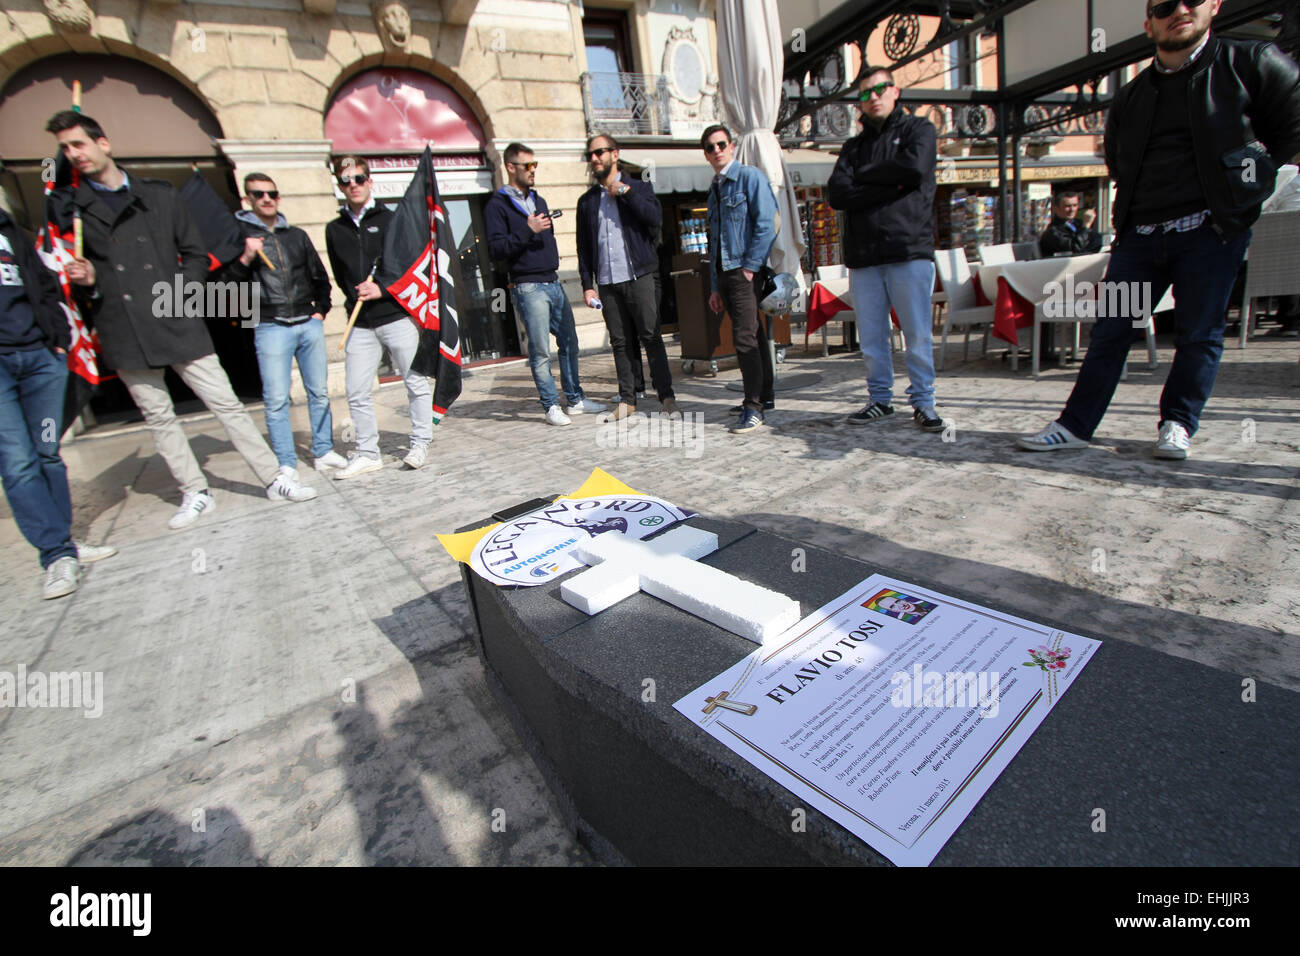 Verona, Italy. 14th Mar, 2015. Italian Political Party Forza Nuova shows a fake funeral ceremony with coffin made Stock Photo